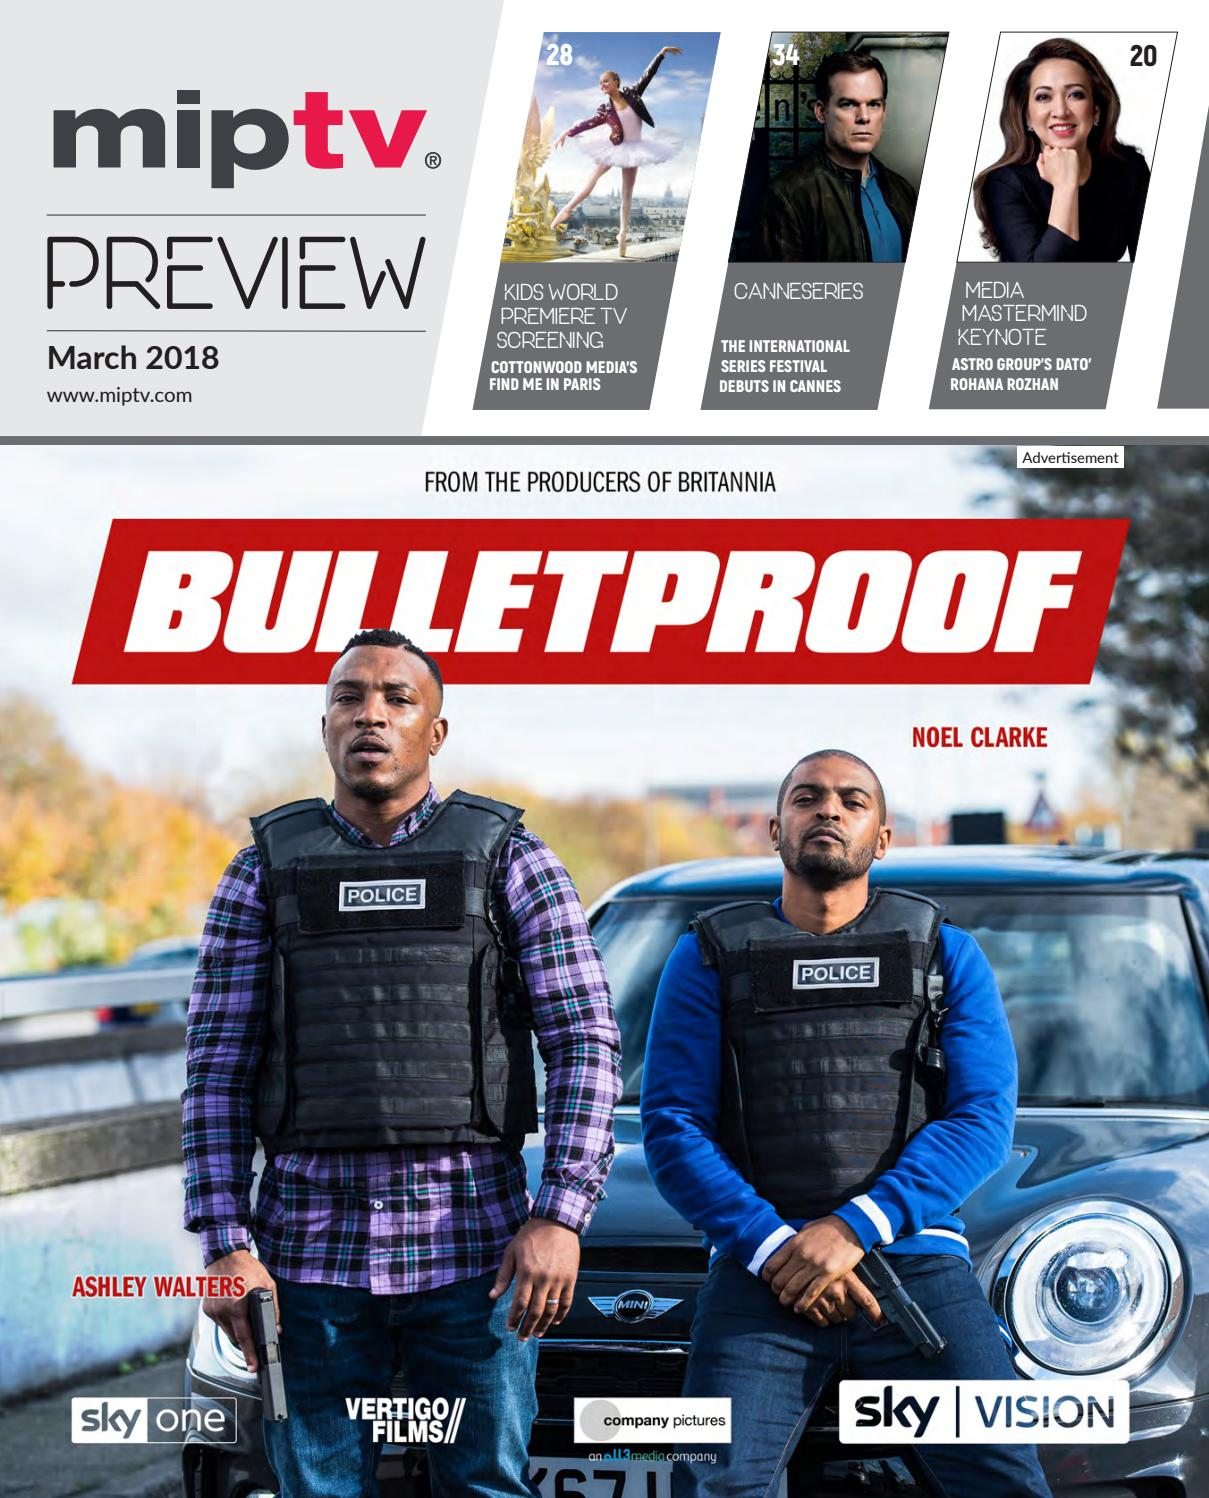 Miptv 2018 preview magazine by MIPMarkets - issuu